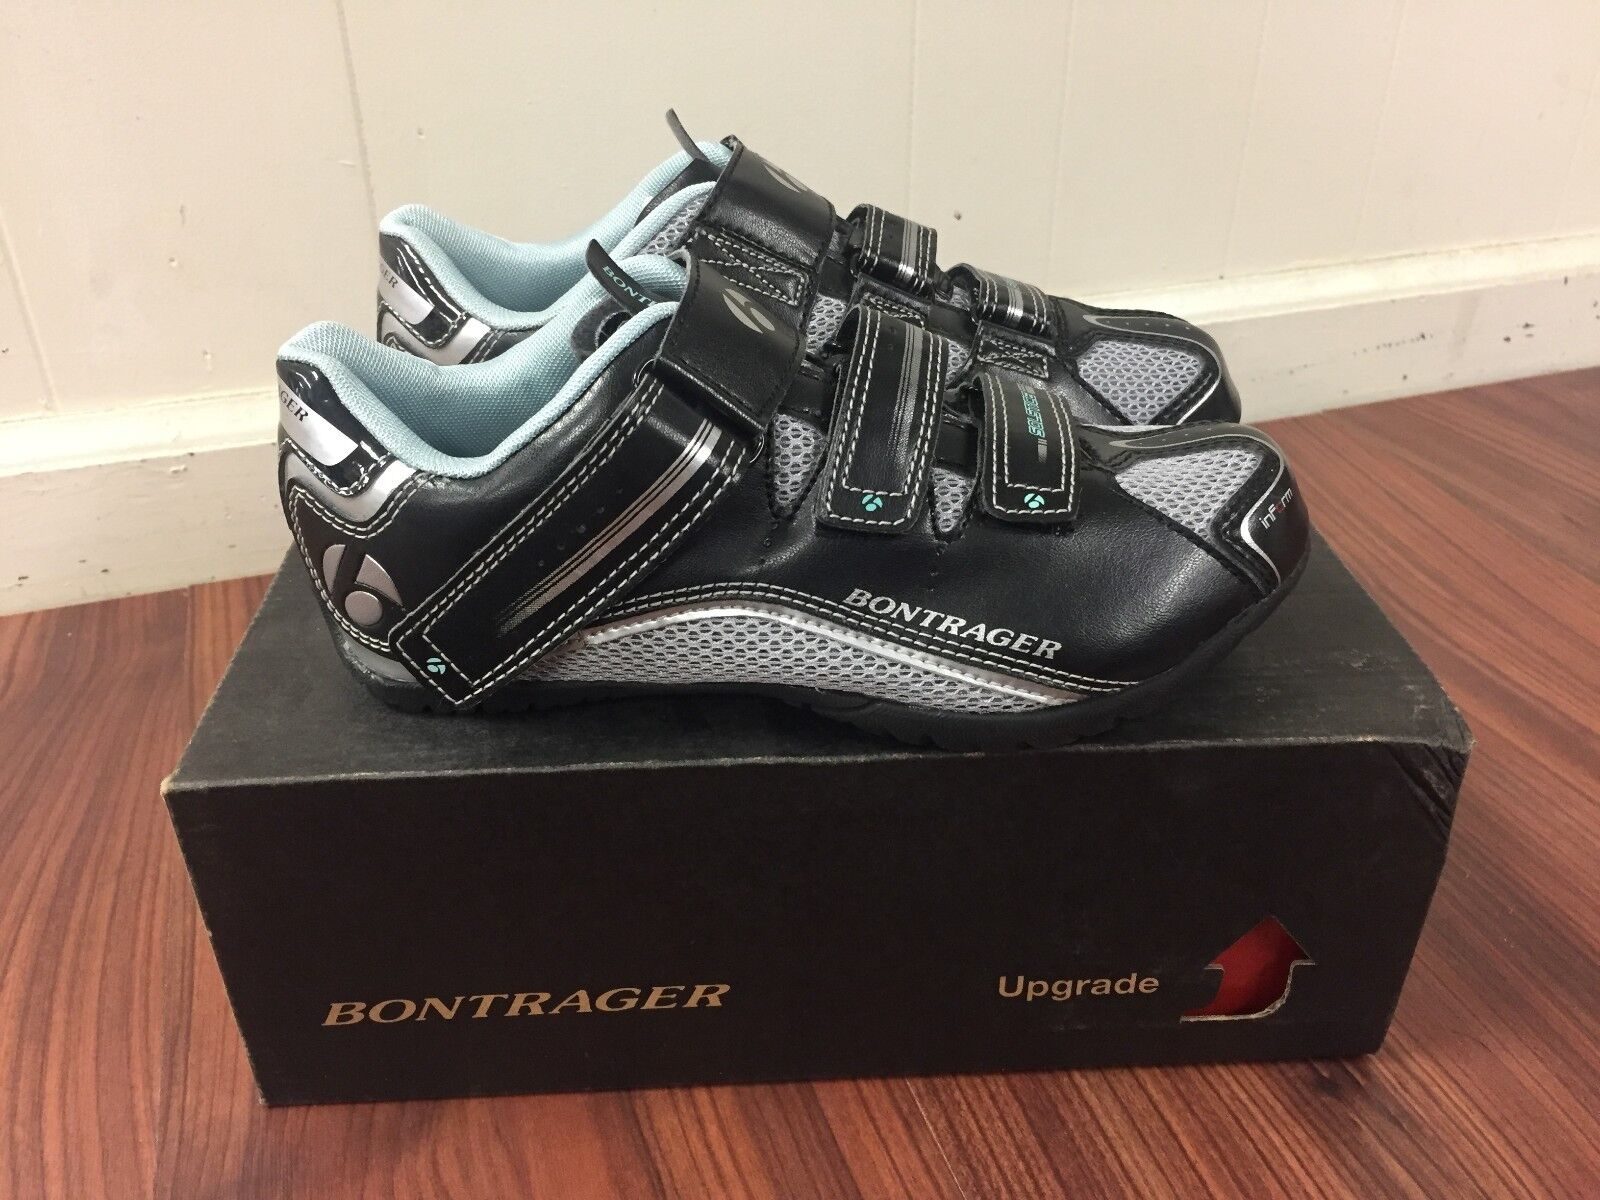 Bontrager Solstice Multisport Women's 36 US shoes New in Box